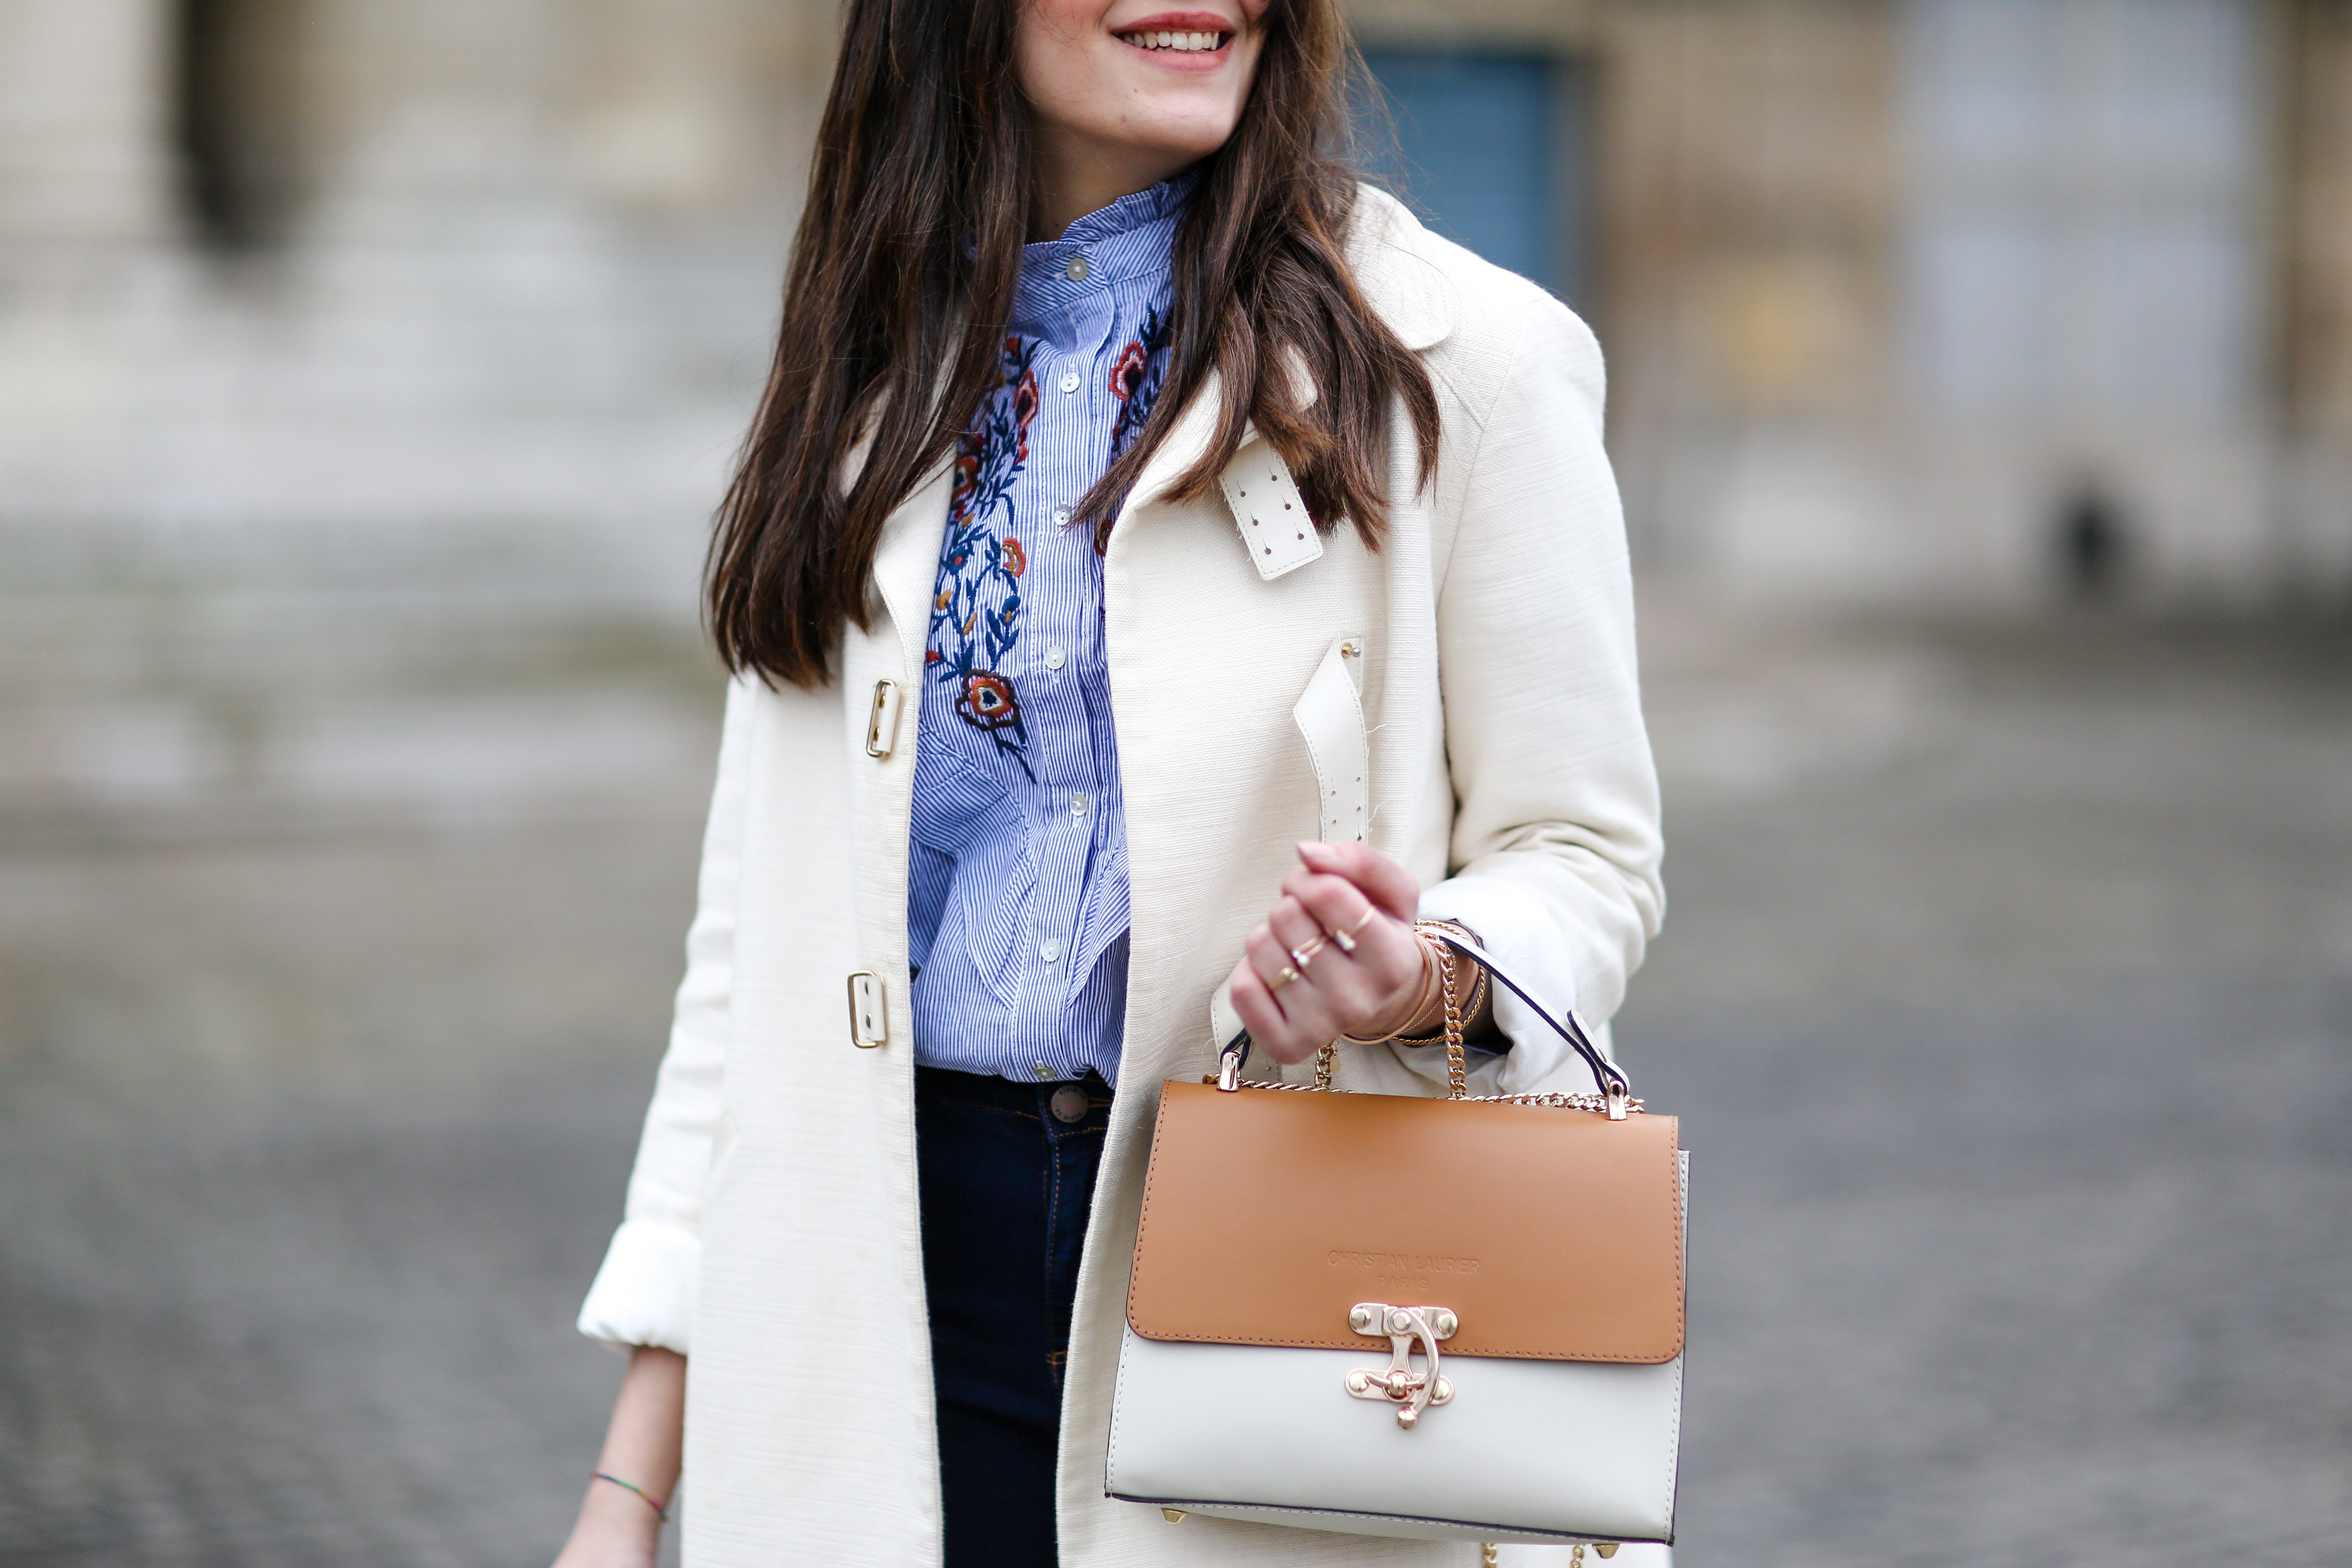 Woman in a blue button-down shirt under a white jacket. She carried a white and tan bag.